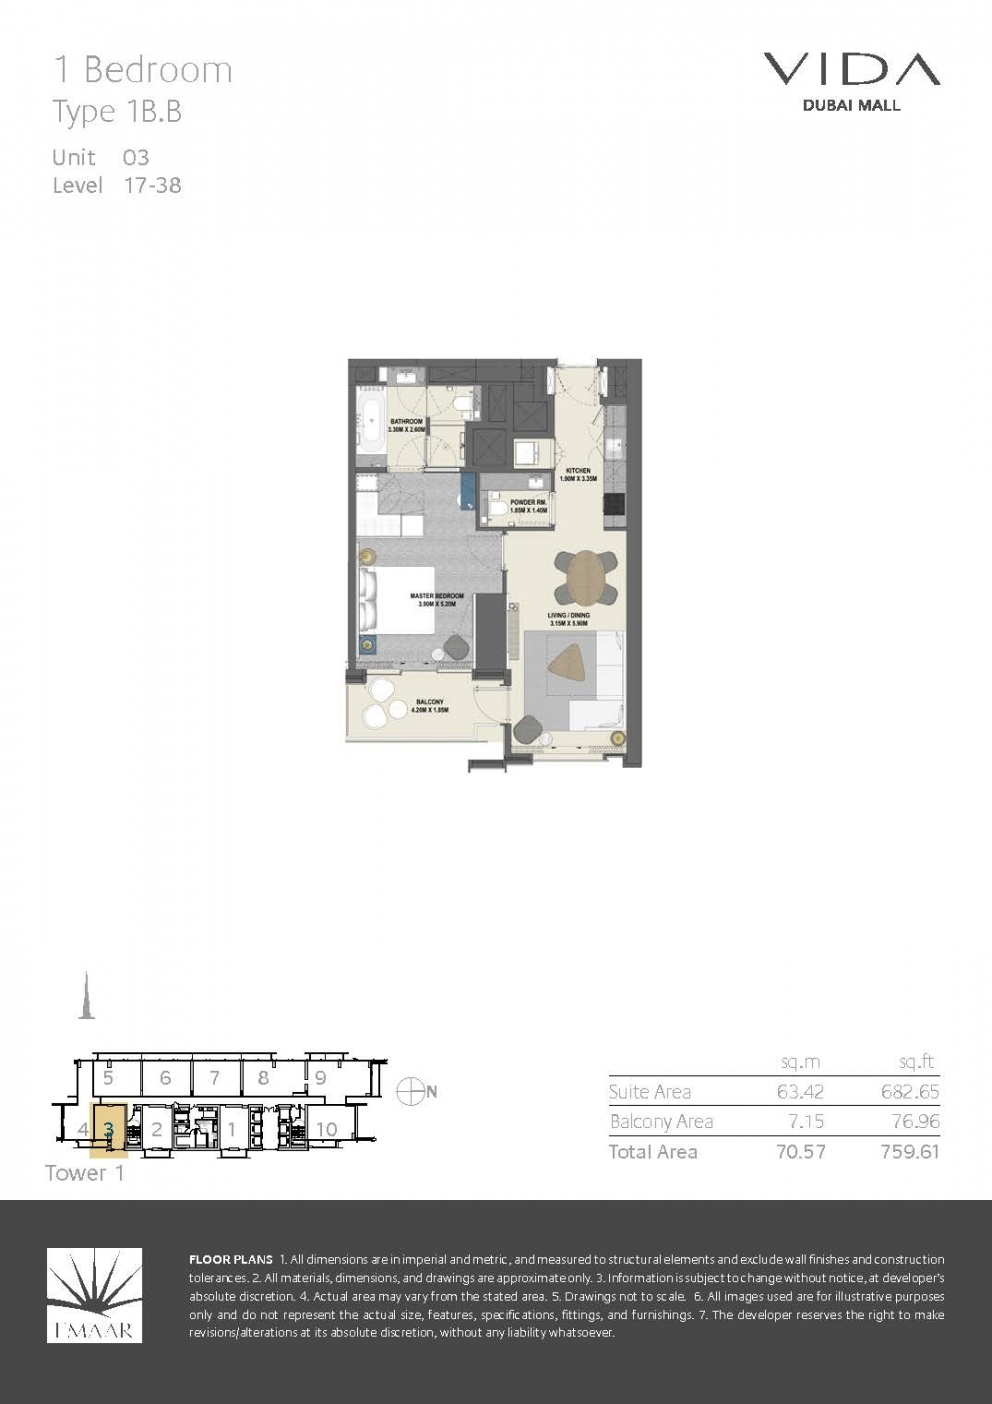 Vida Dubai Mall - Floor Plans T1 Page 03